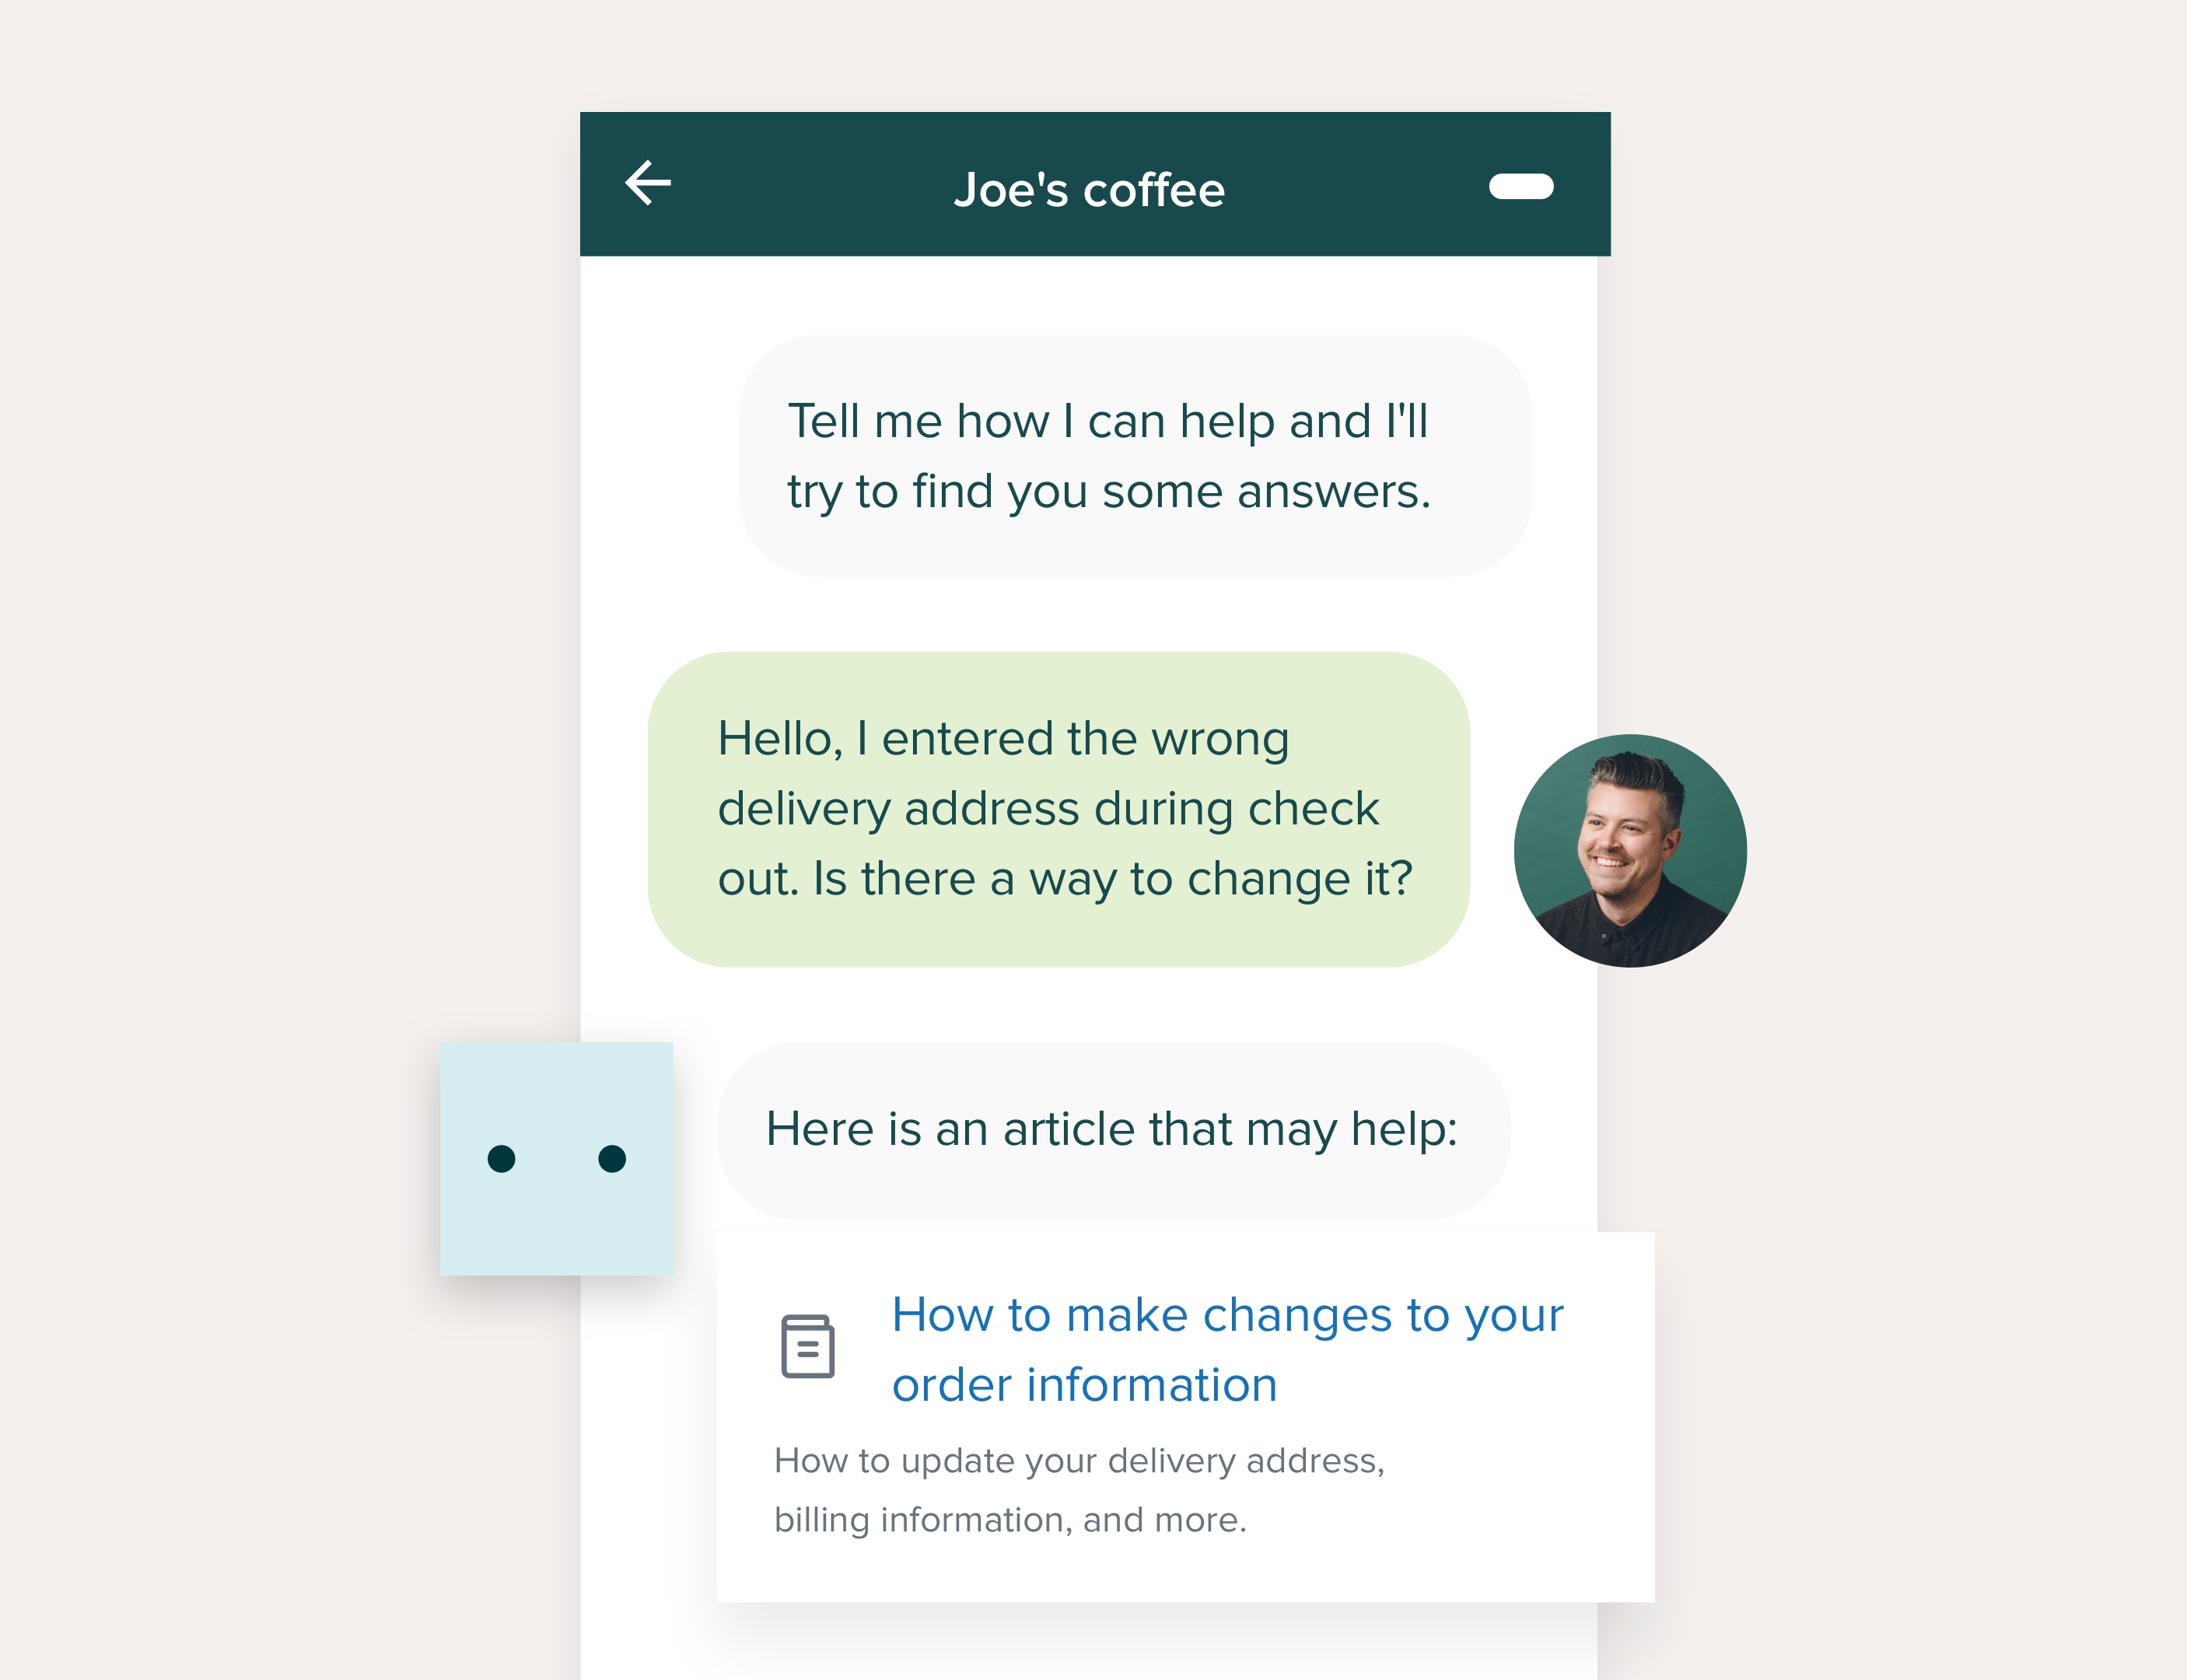 screenshot of a self-service chatbot interface